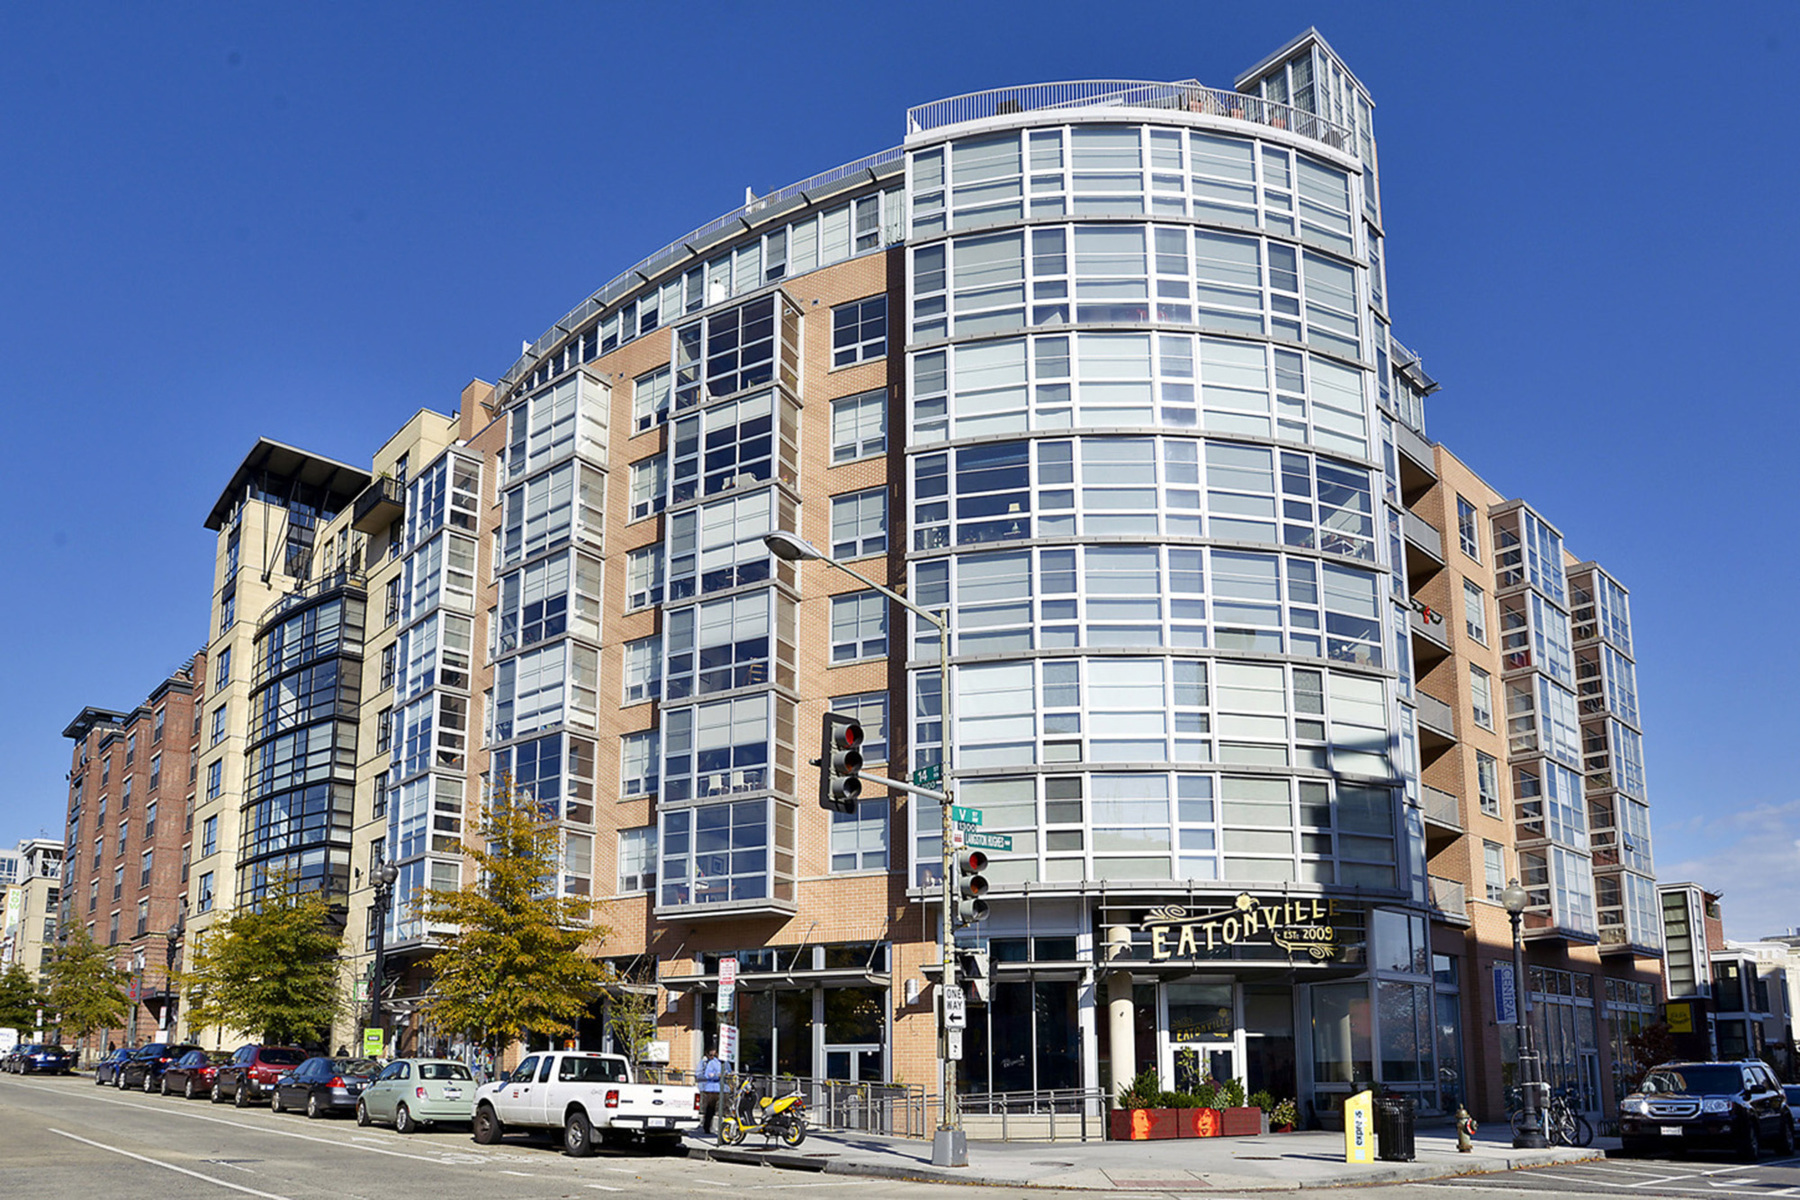 Condominium for Sale at 2125 14th Street Nw 414, Washington Washington, District Of Columbia 20009 United States